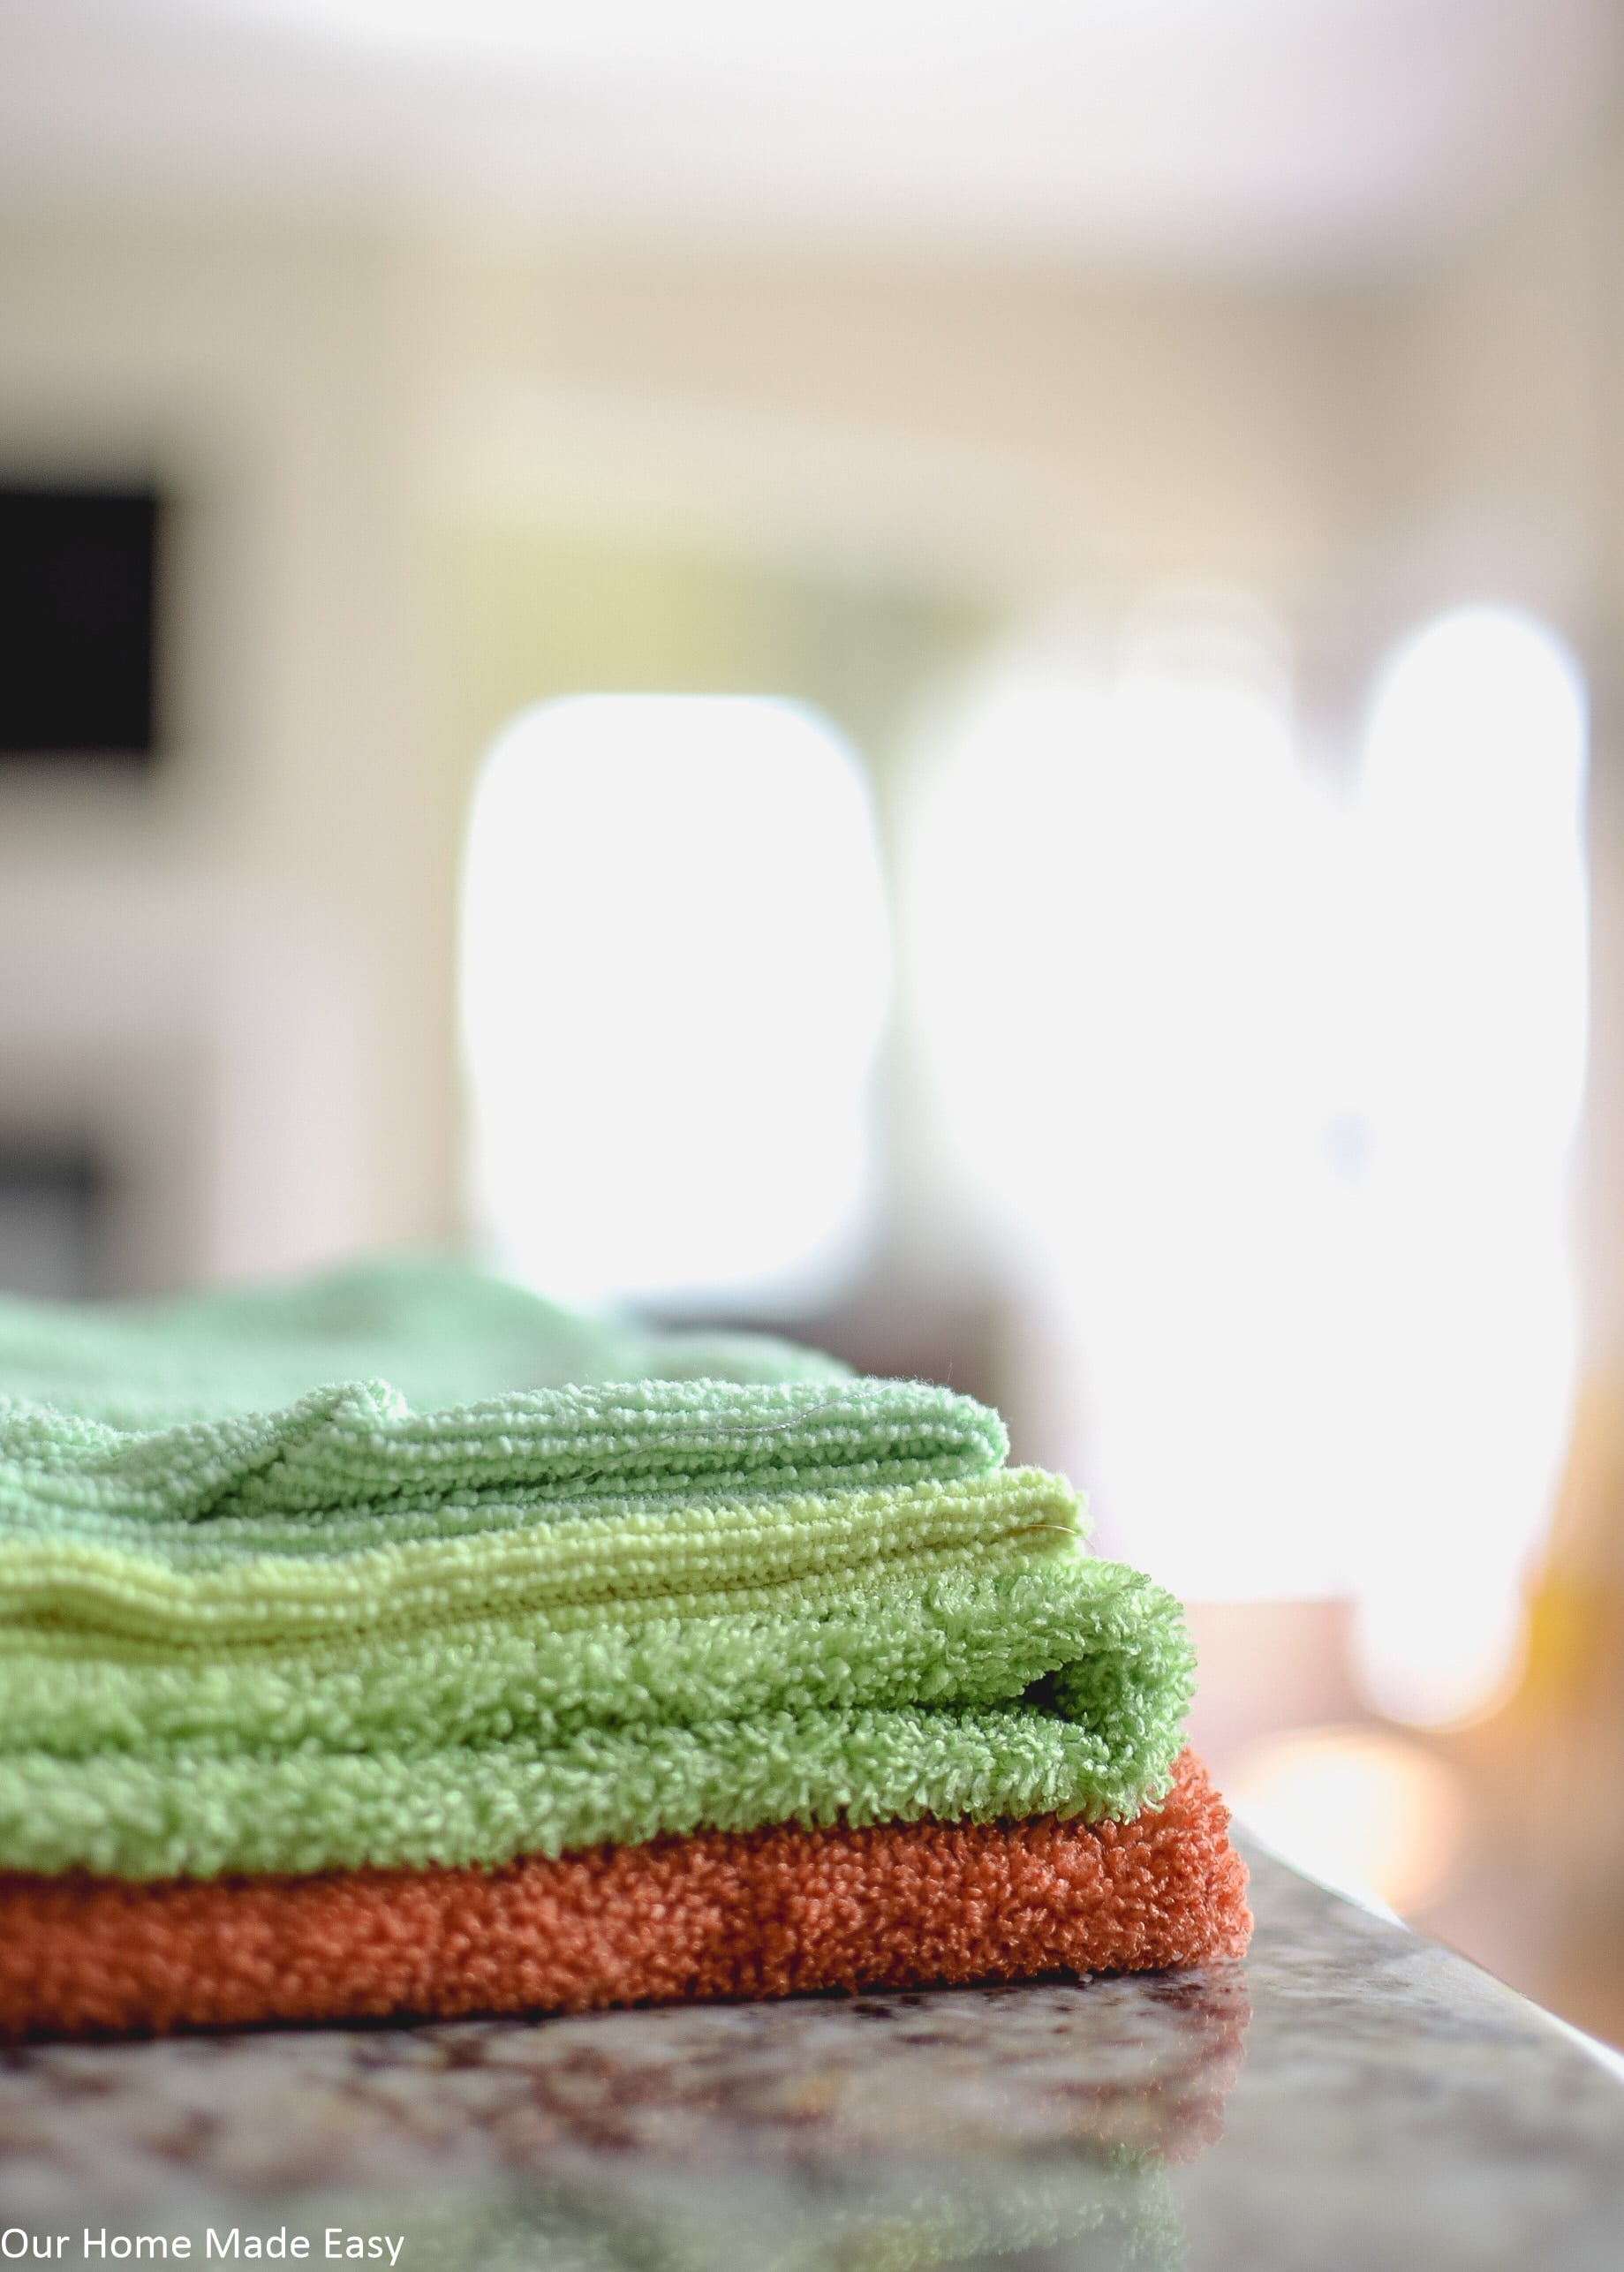 Folded microfiber towels in orange, green, yellow, and blue